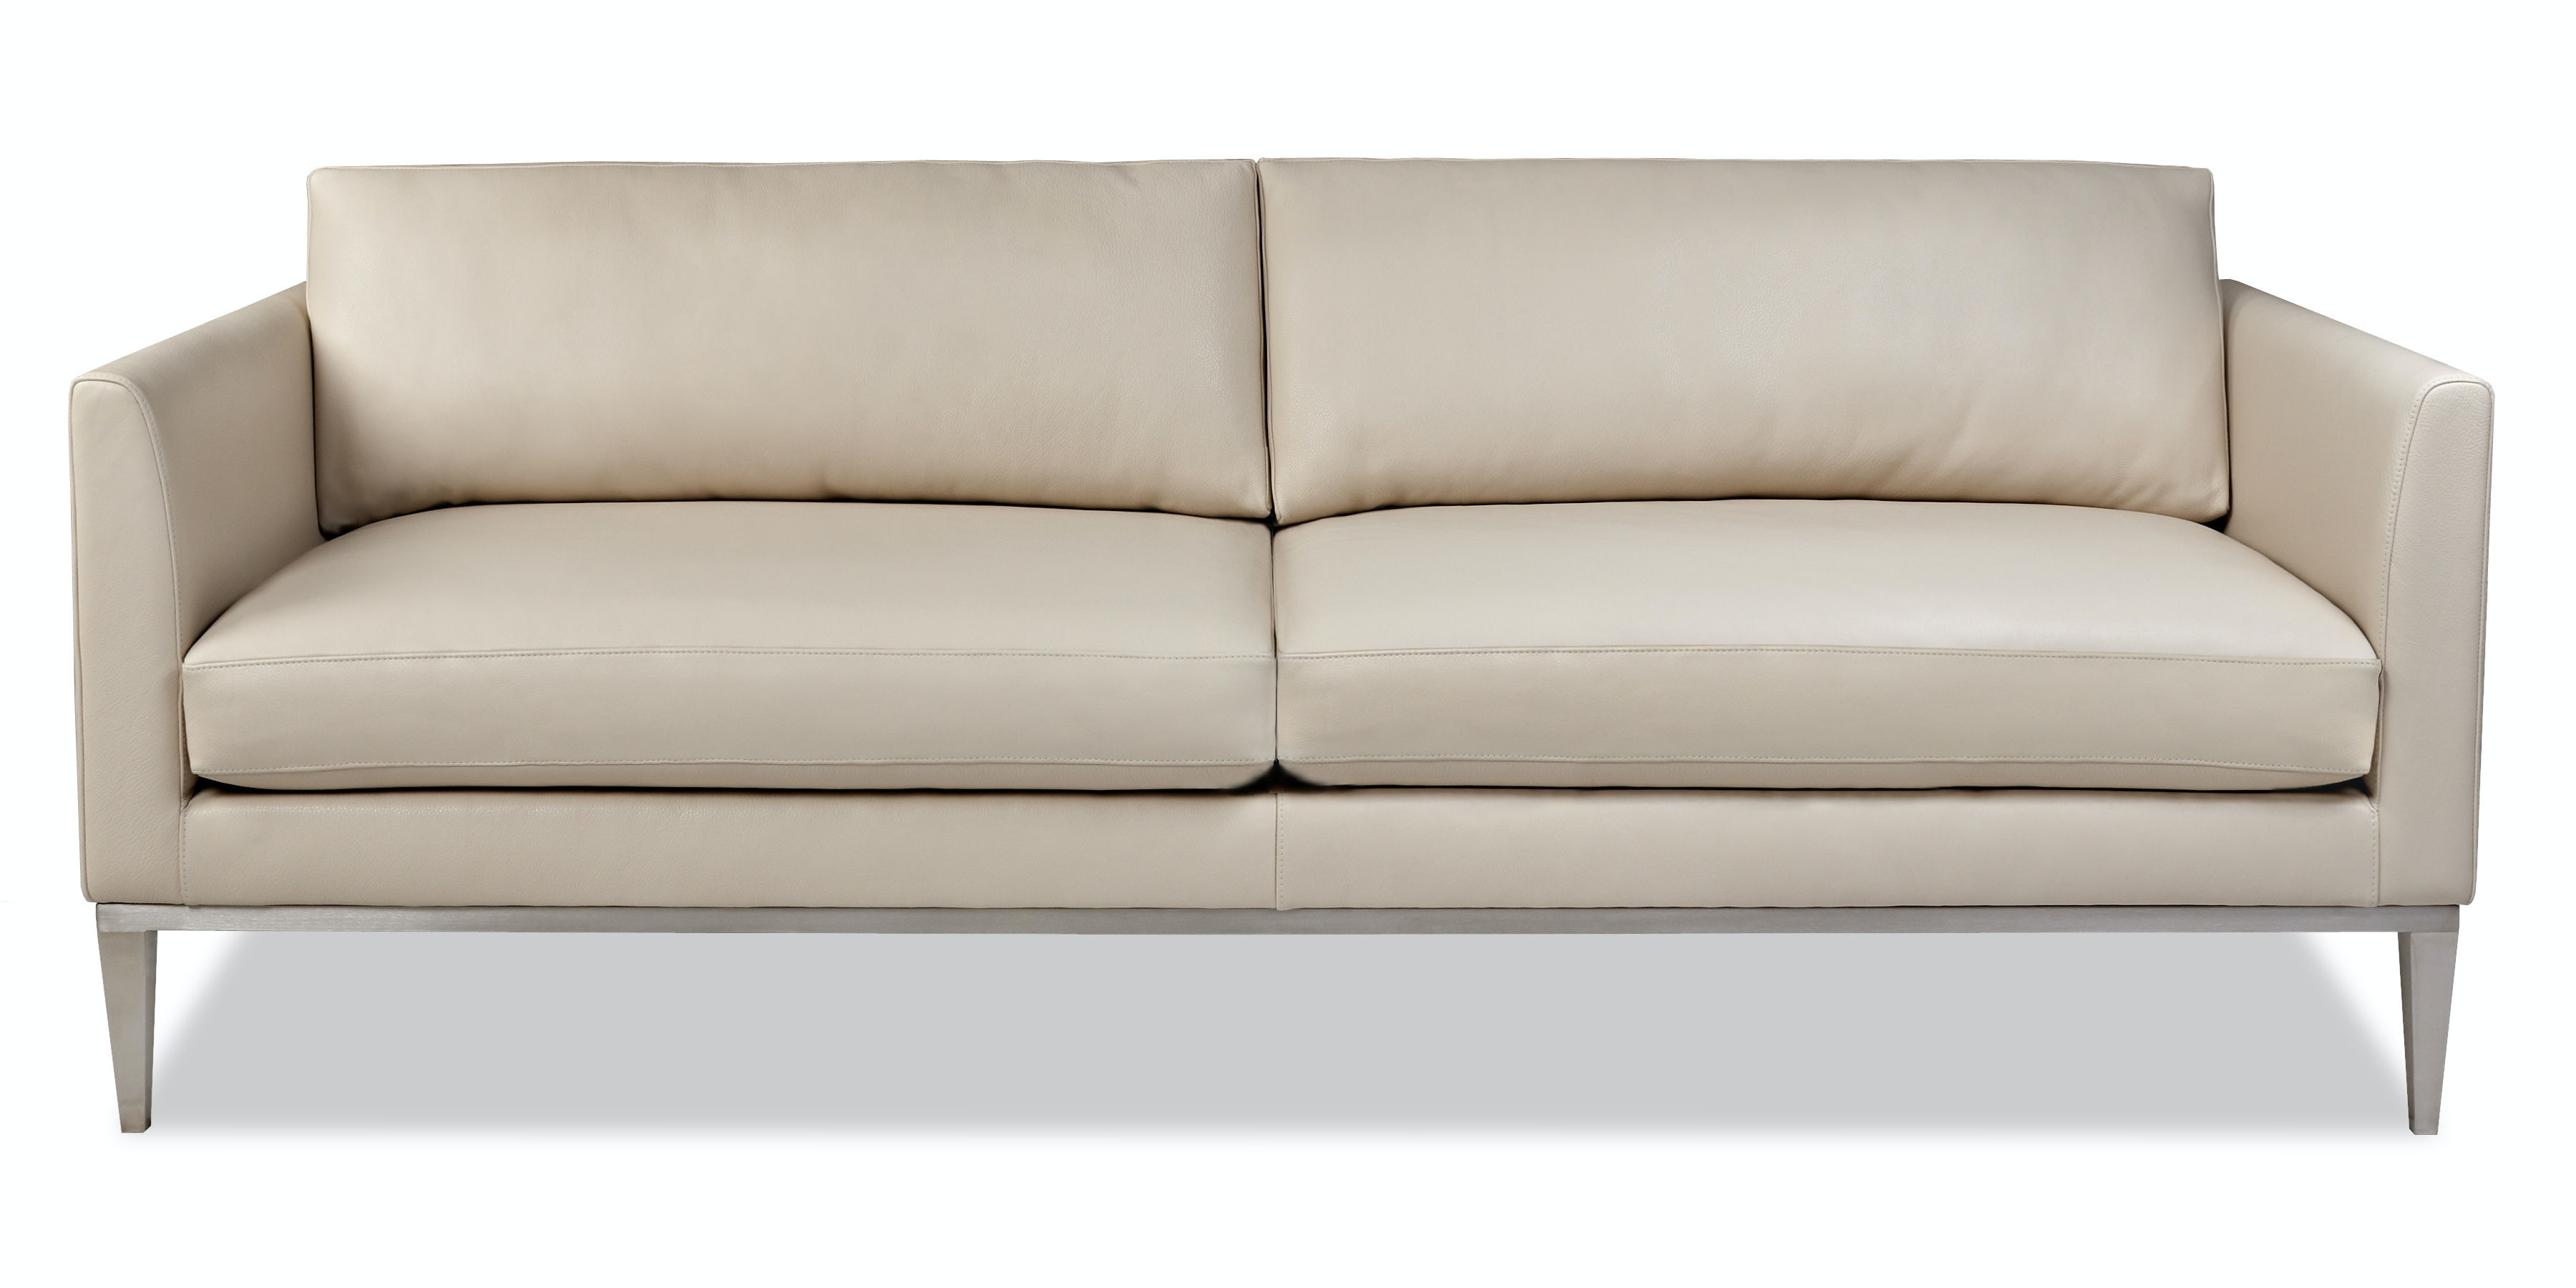 American Leather Living Room Two Cushion Sofa Hen So2 St